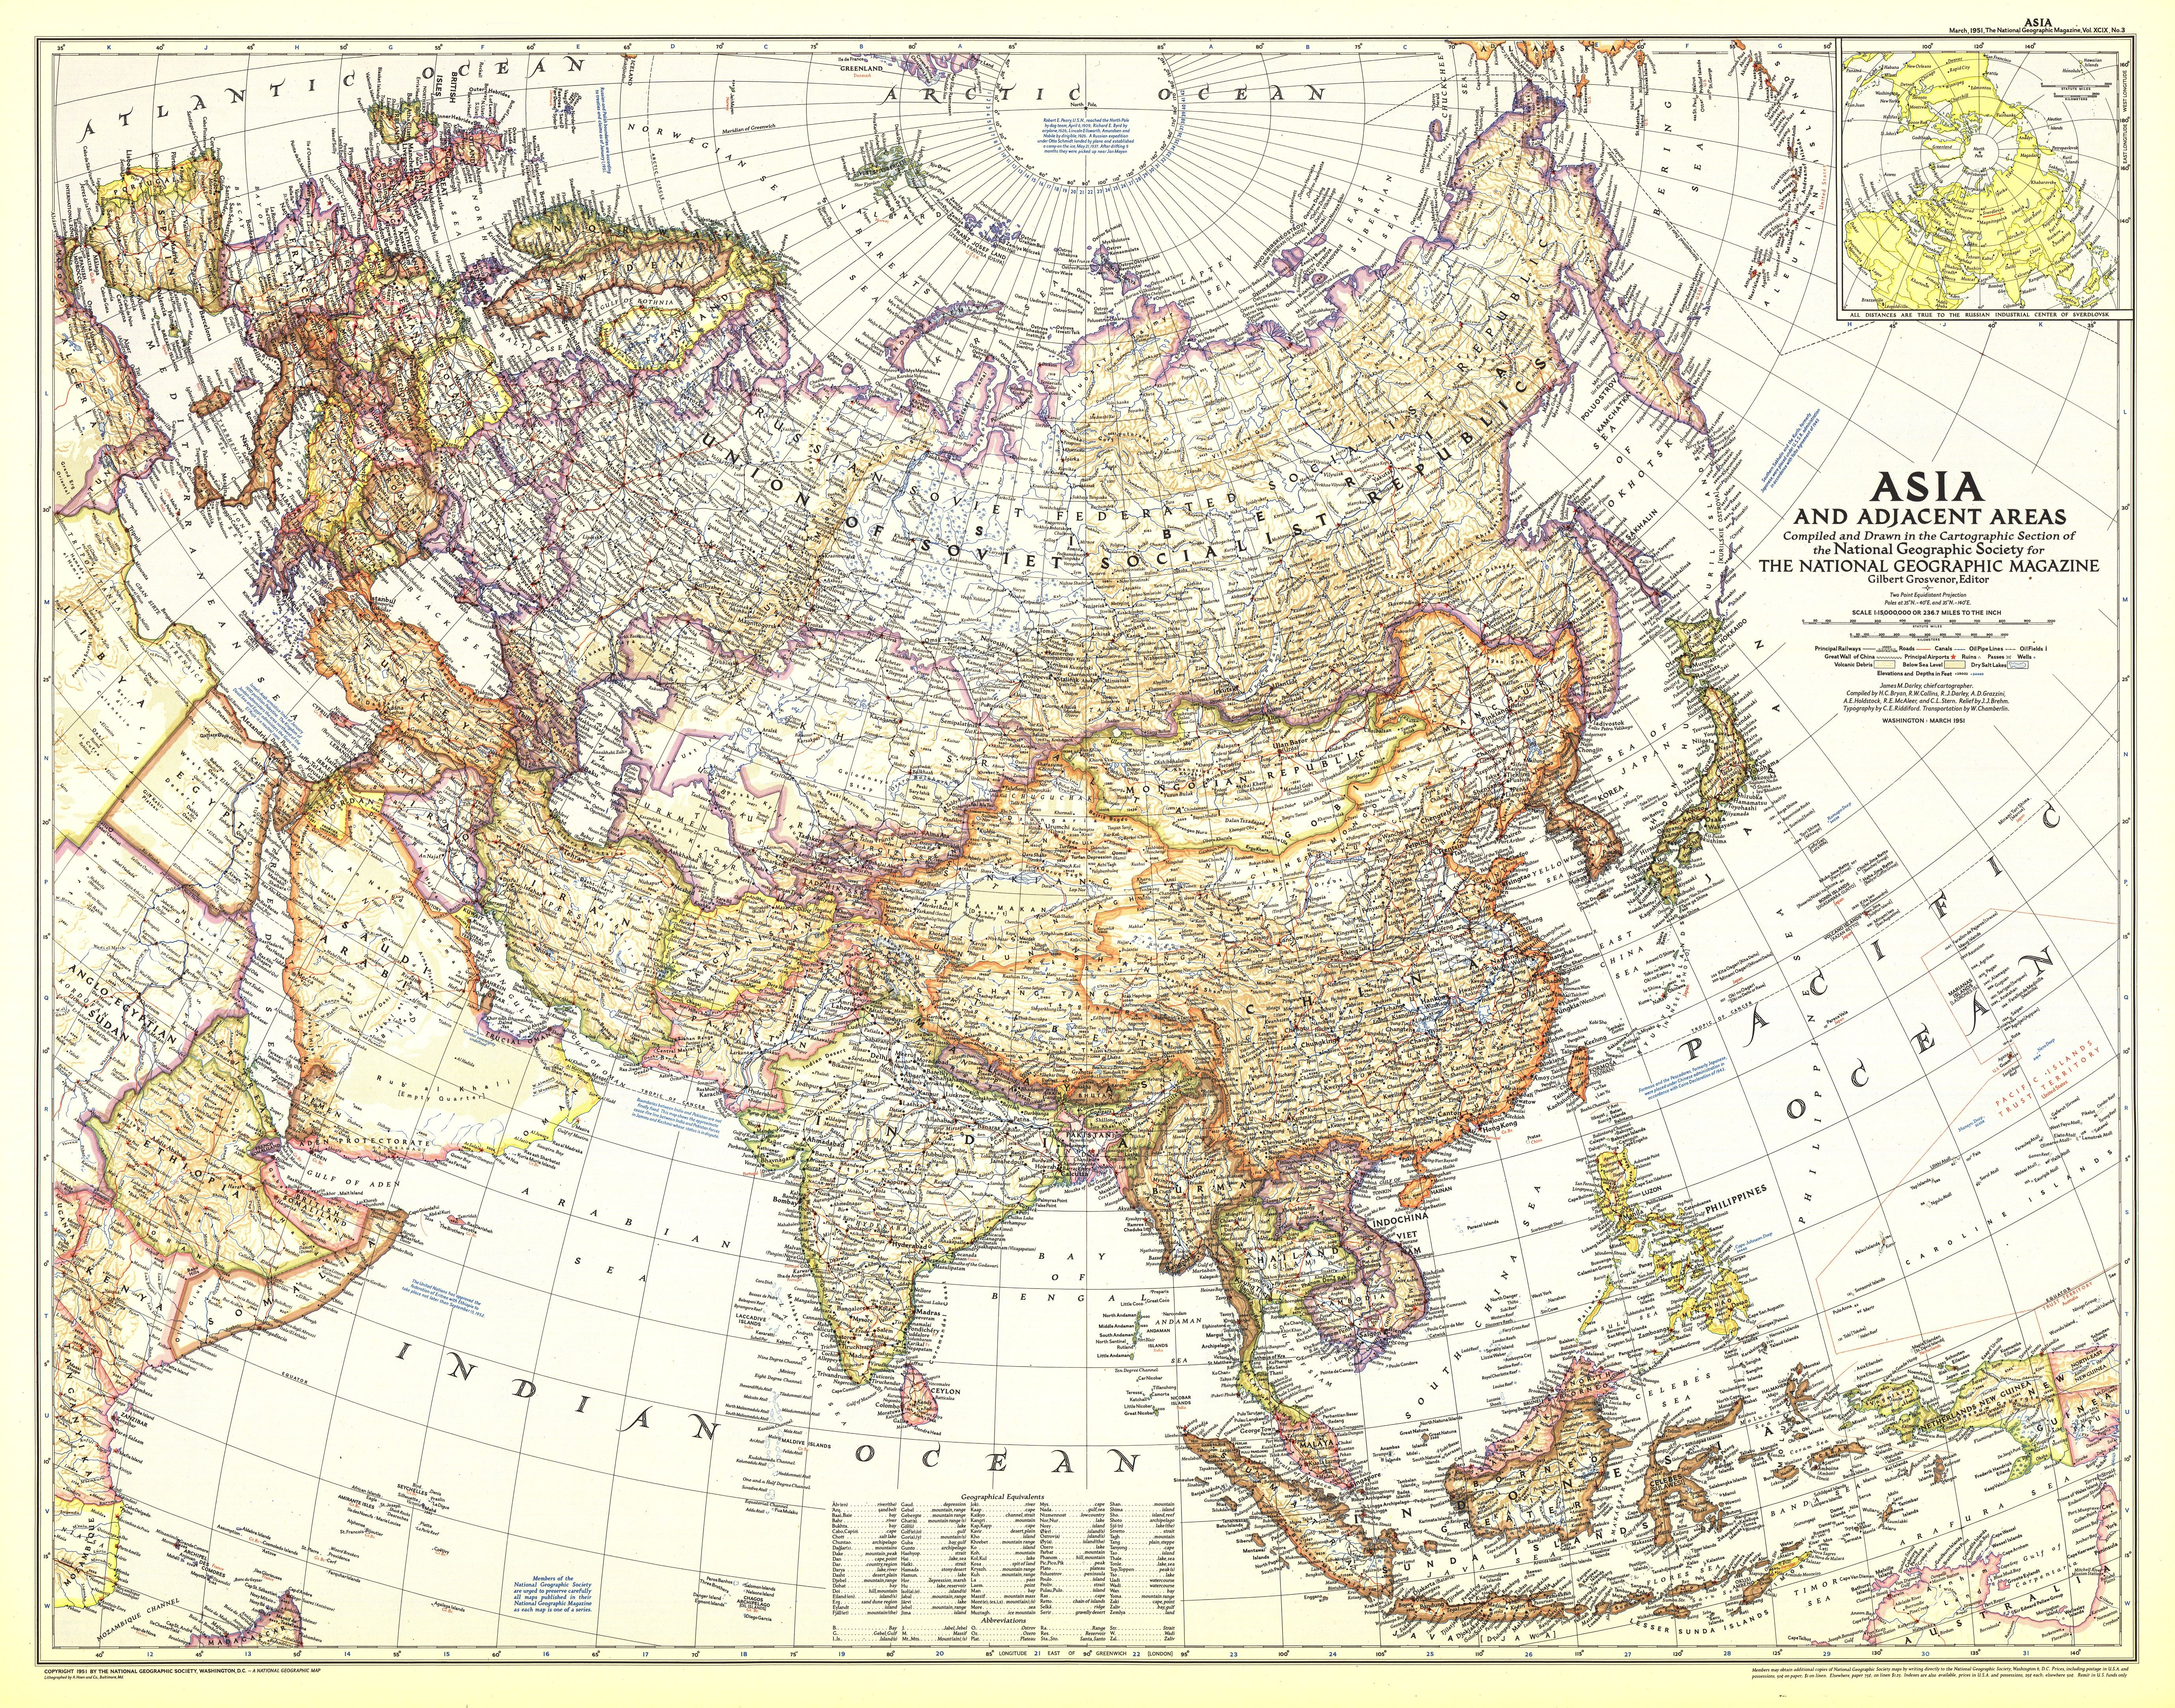 1951 Asia And Adjacent Areas Map